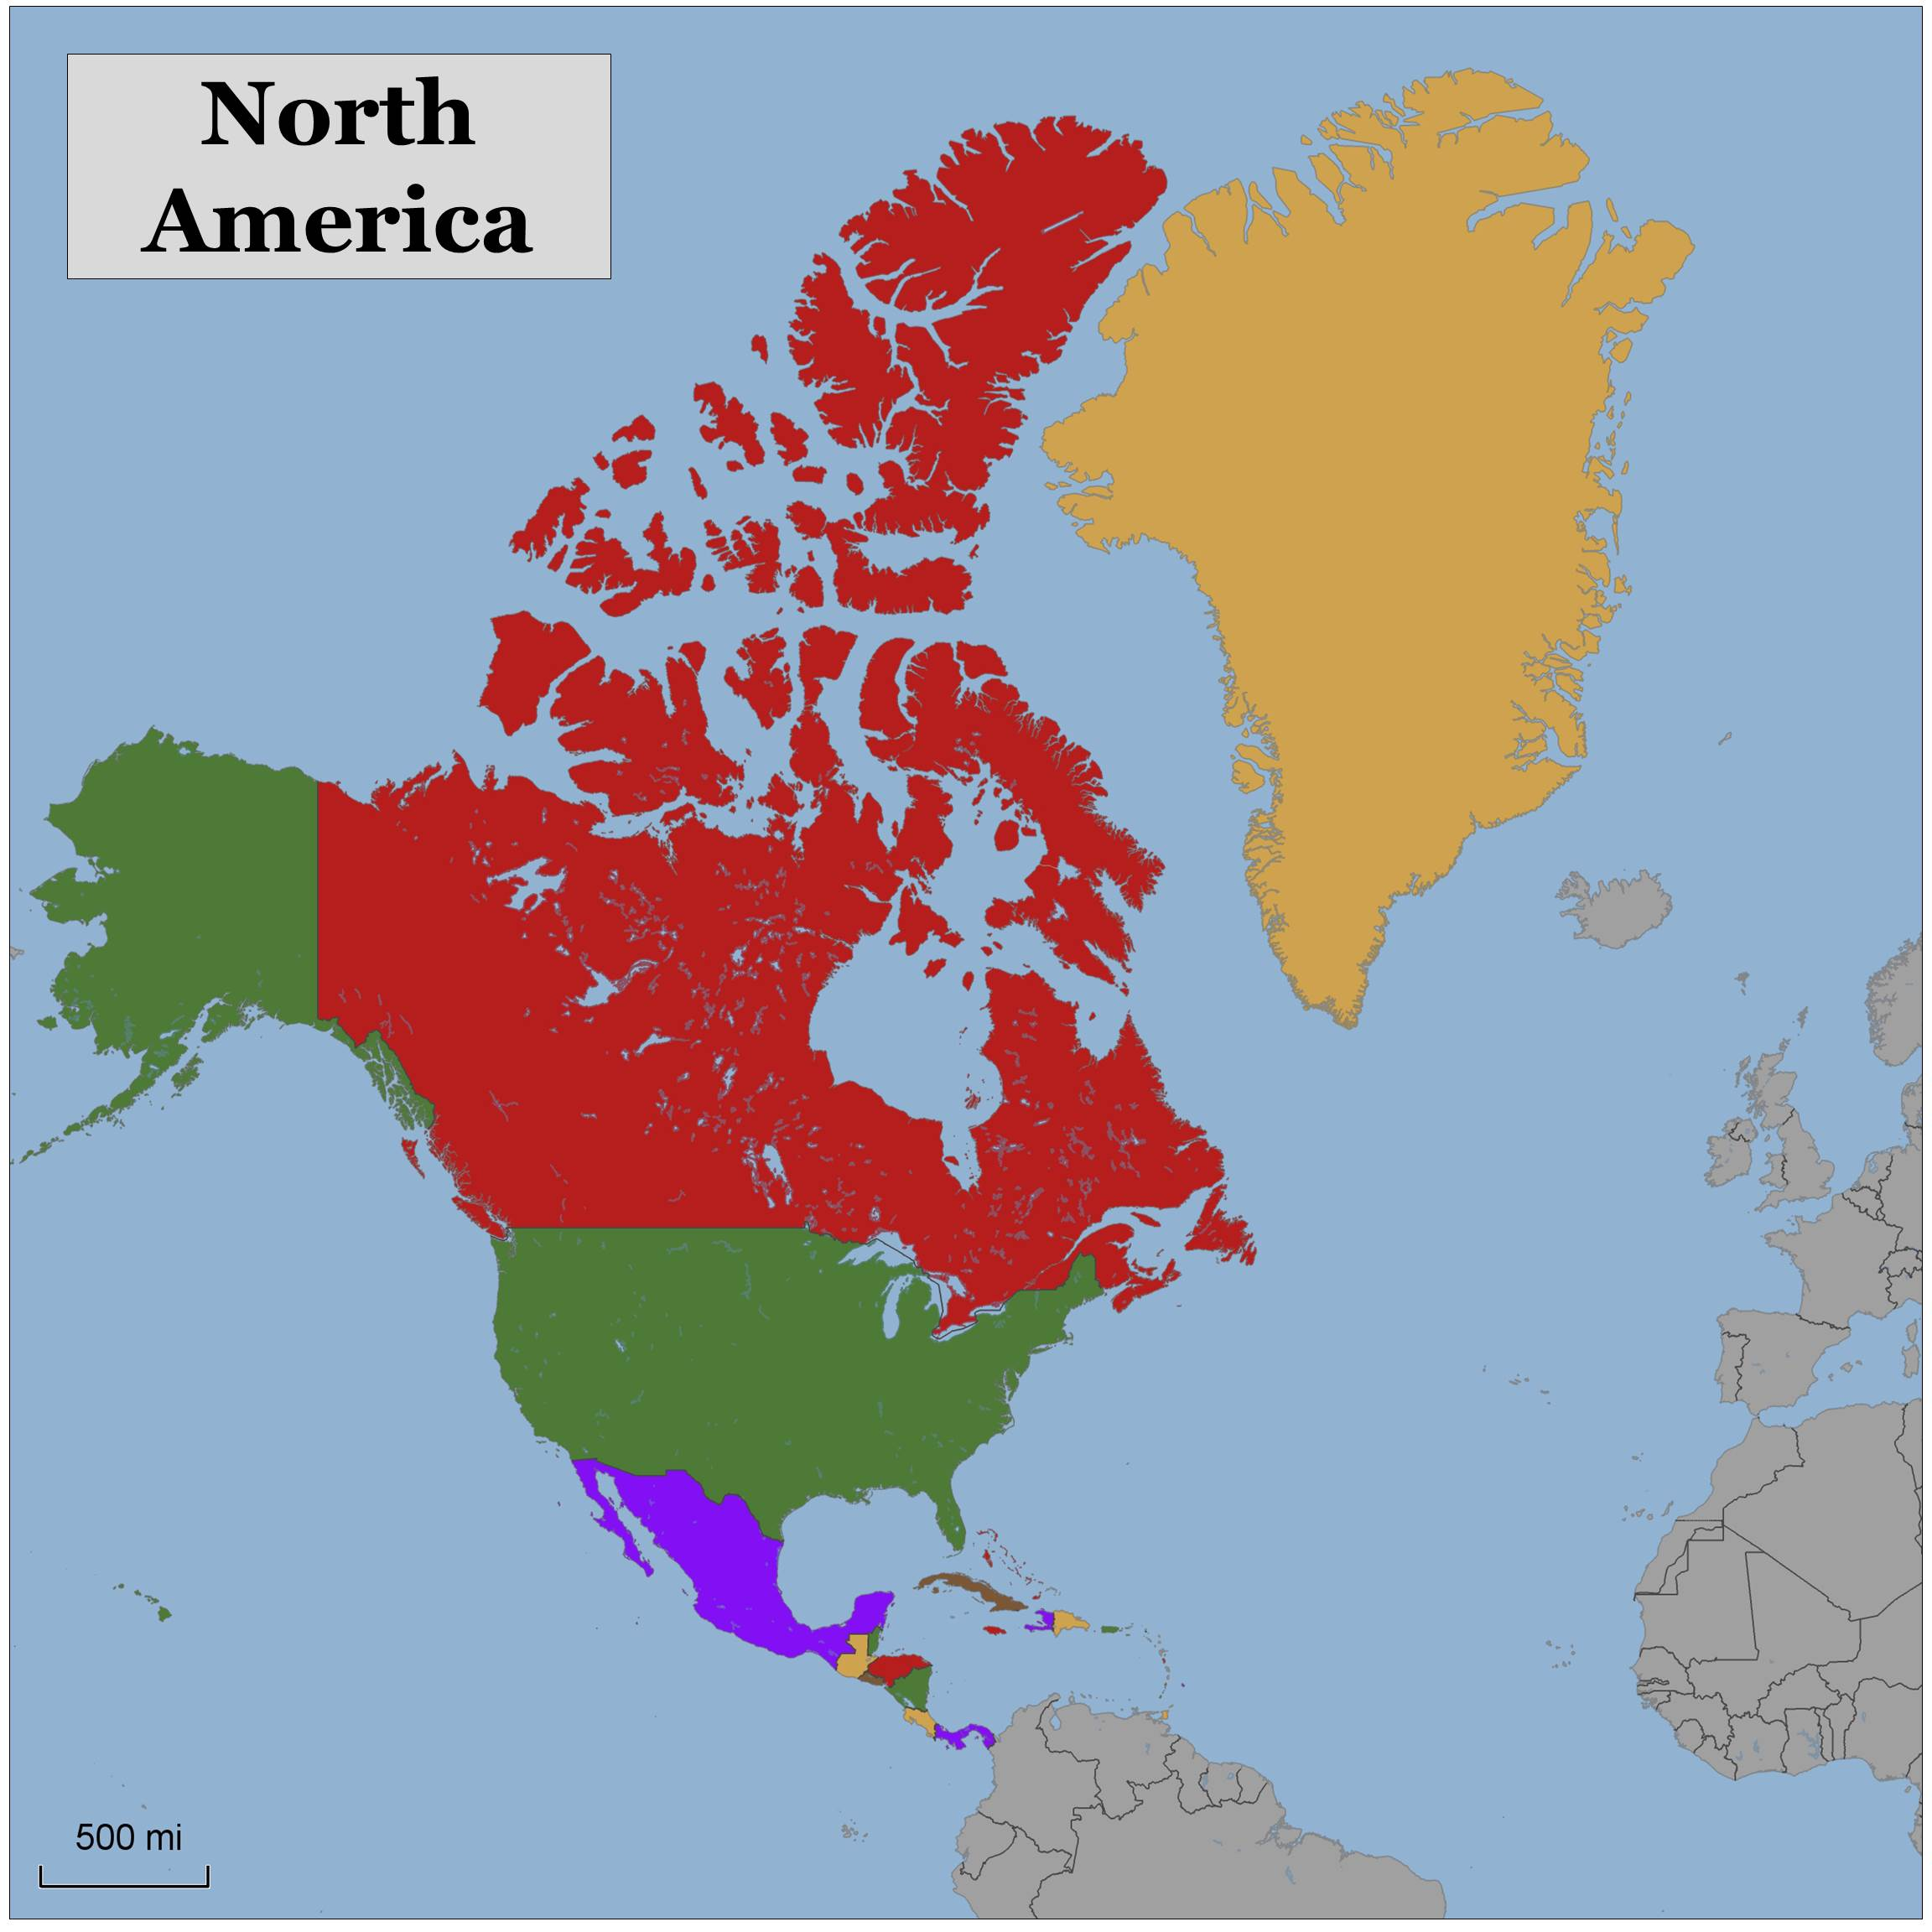 Color Blank Map Of North America Color Blank Map Of North America